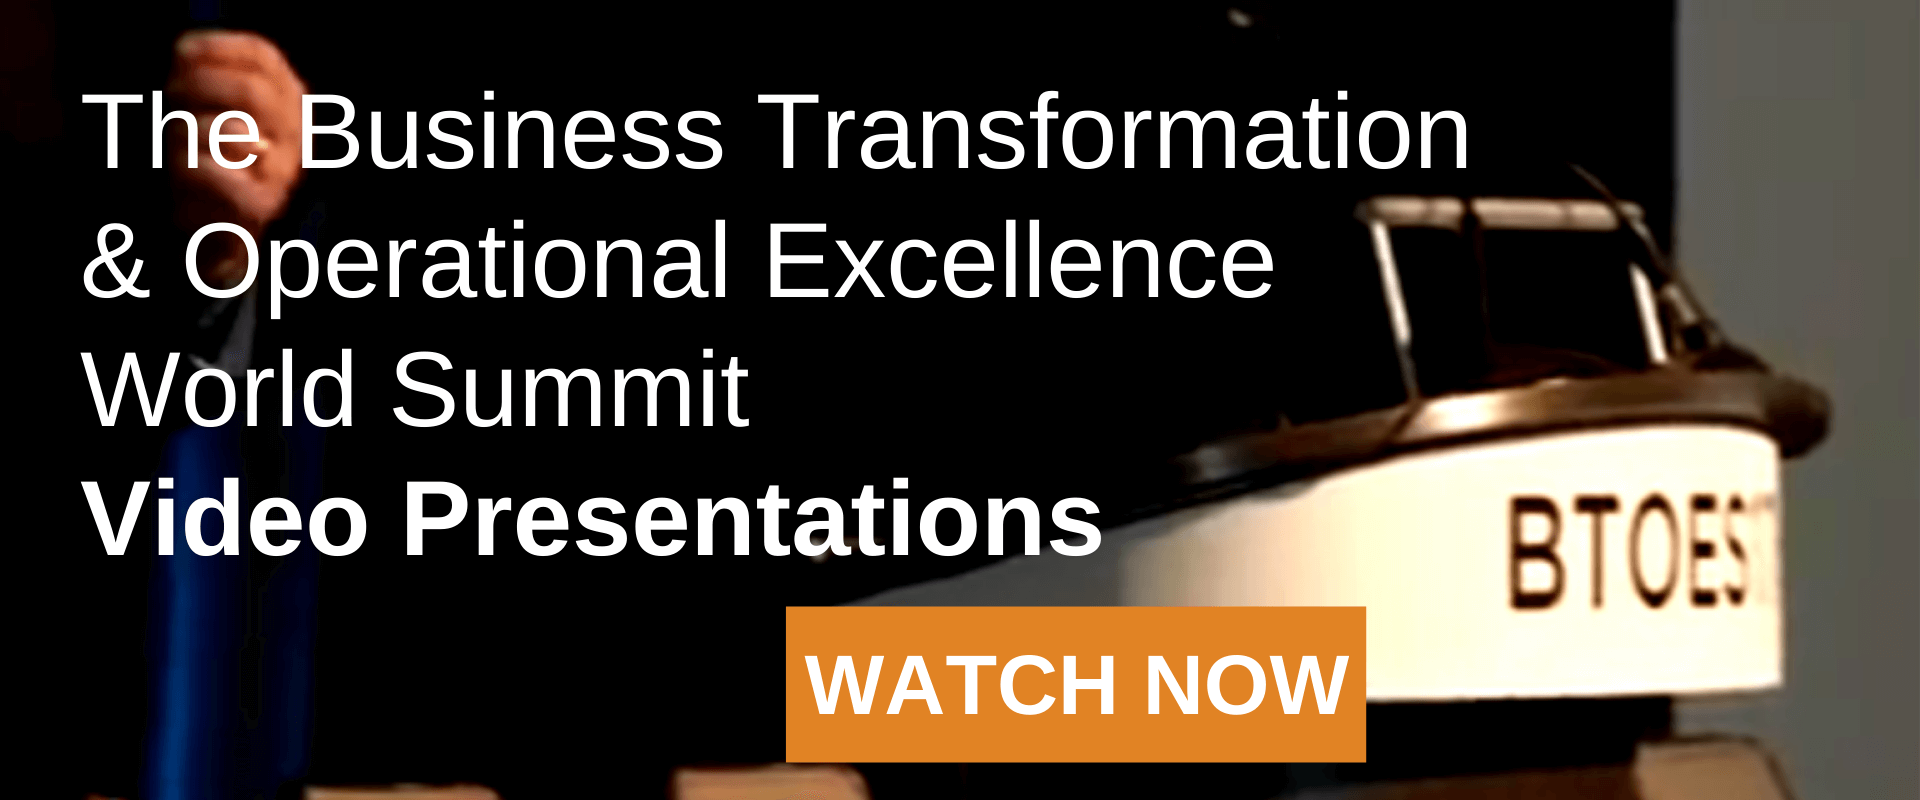 The Business Transformation & Operational Excellence Industry Awards Video Presentation